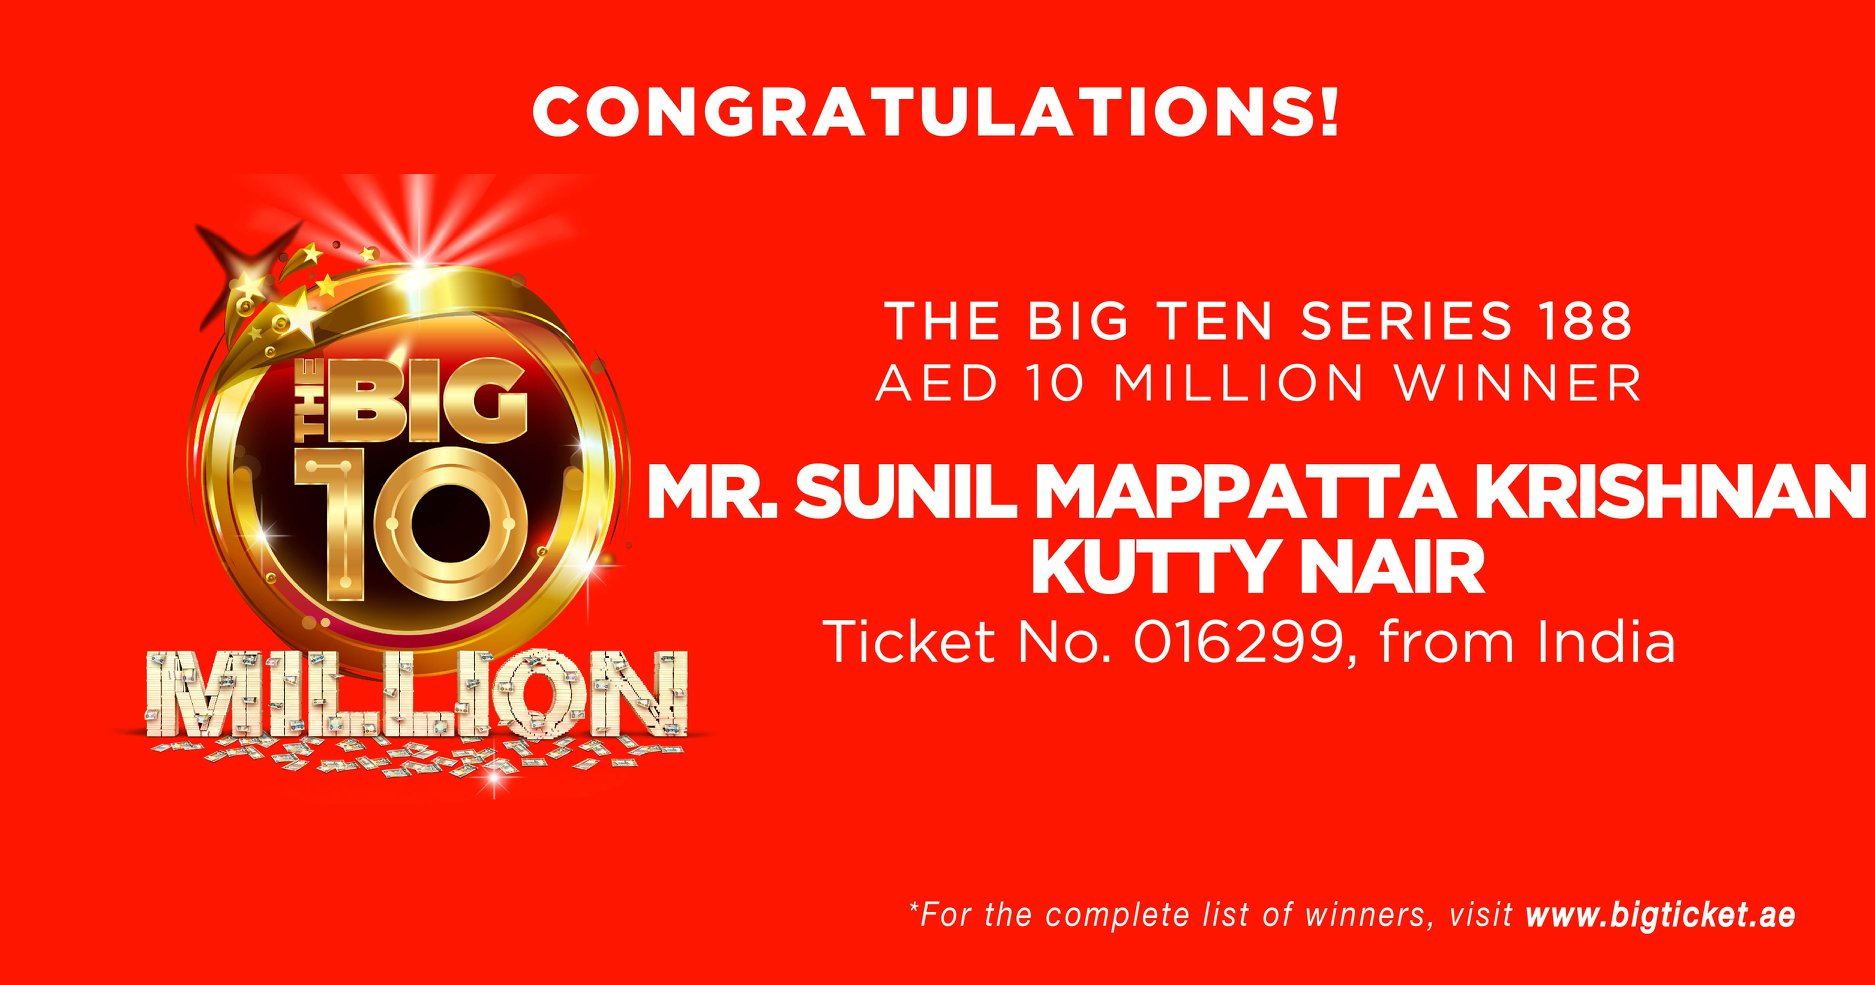 Indian expatriate, Sunil Mappatta Krishnan Kutty Nair has hit the jackpot by winning AED10 million. Photo courtesy: bigticket.ae